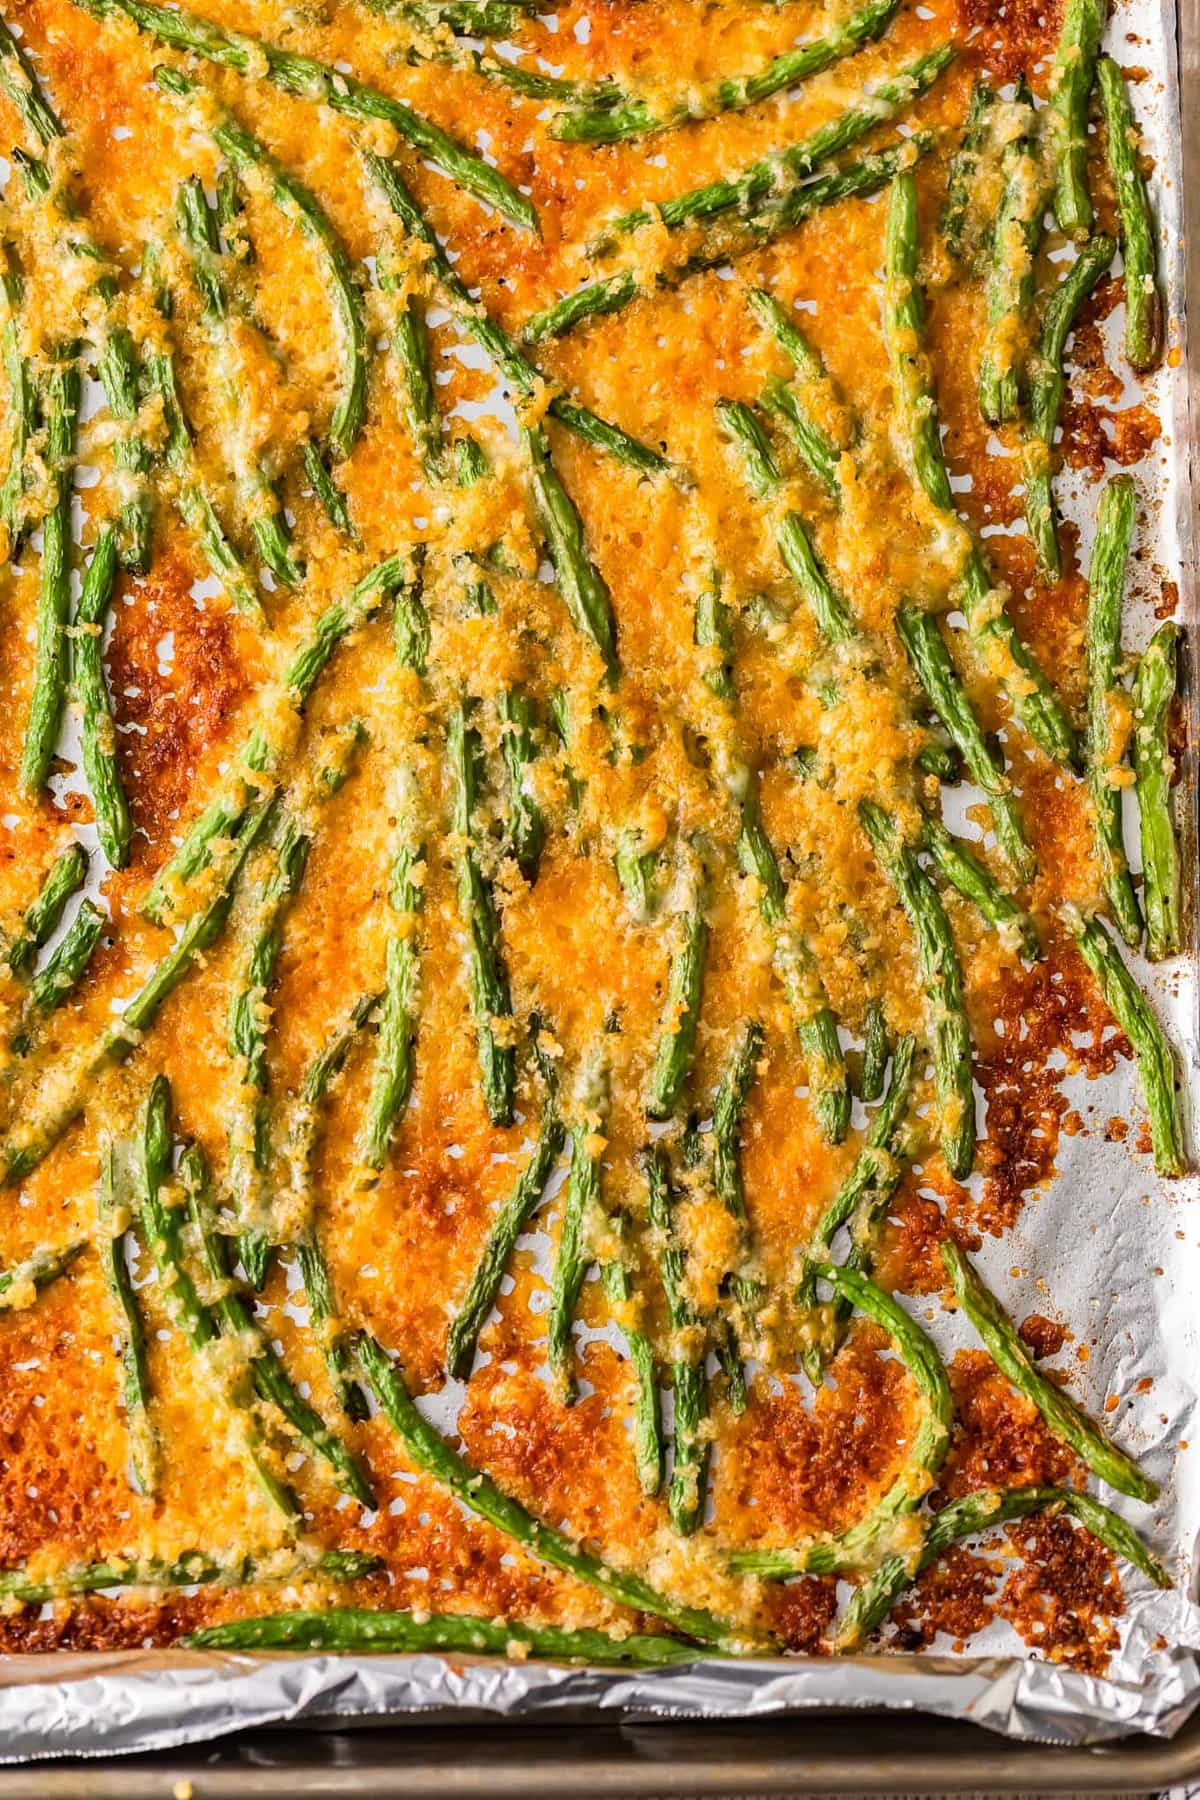 Crispy baked green beans on a sheet pan